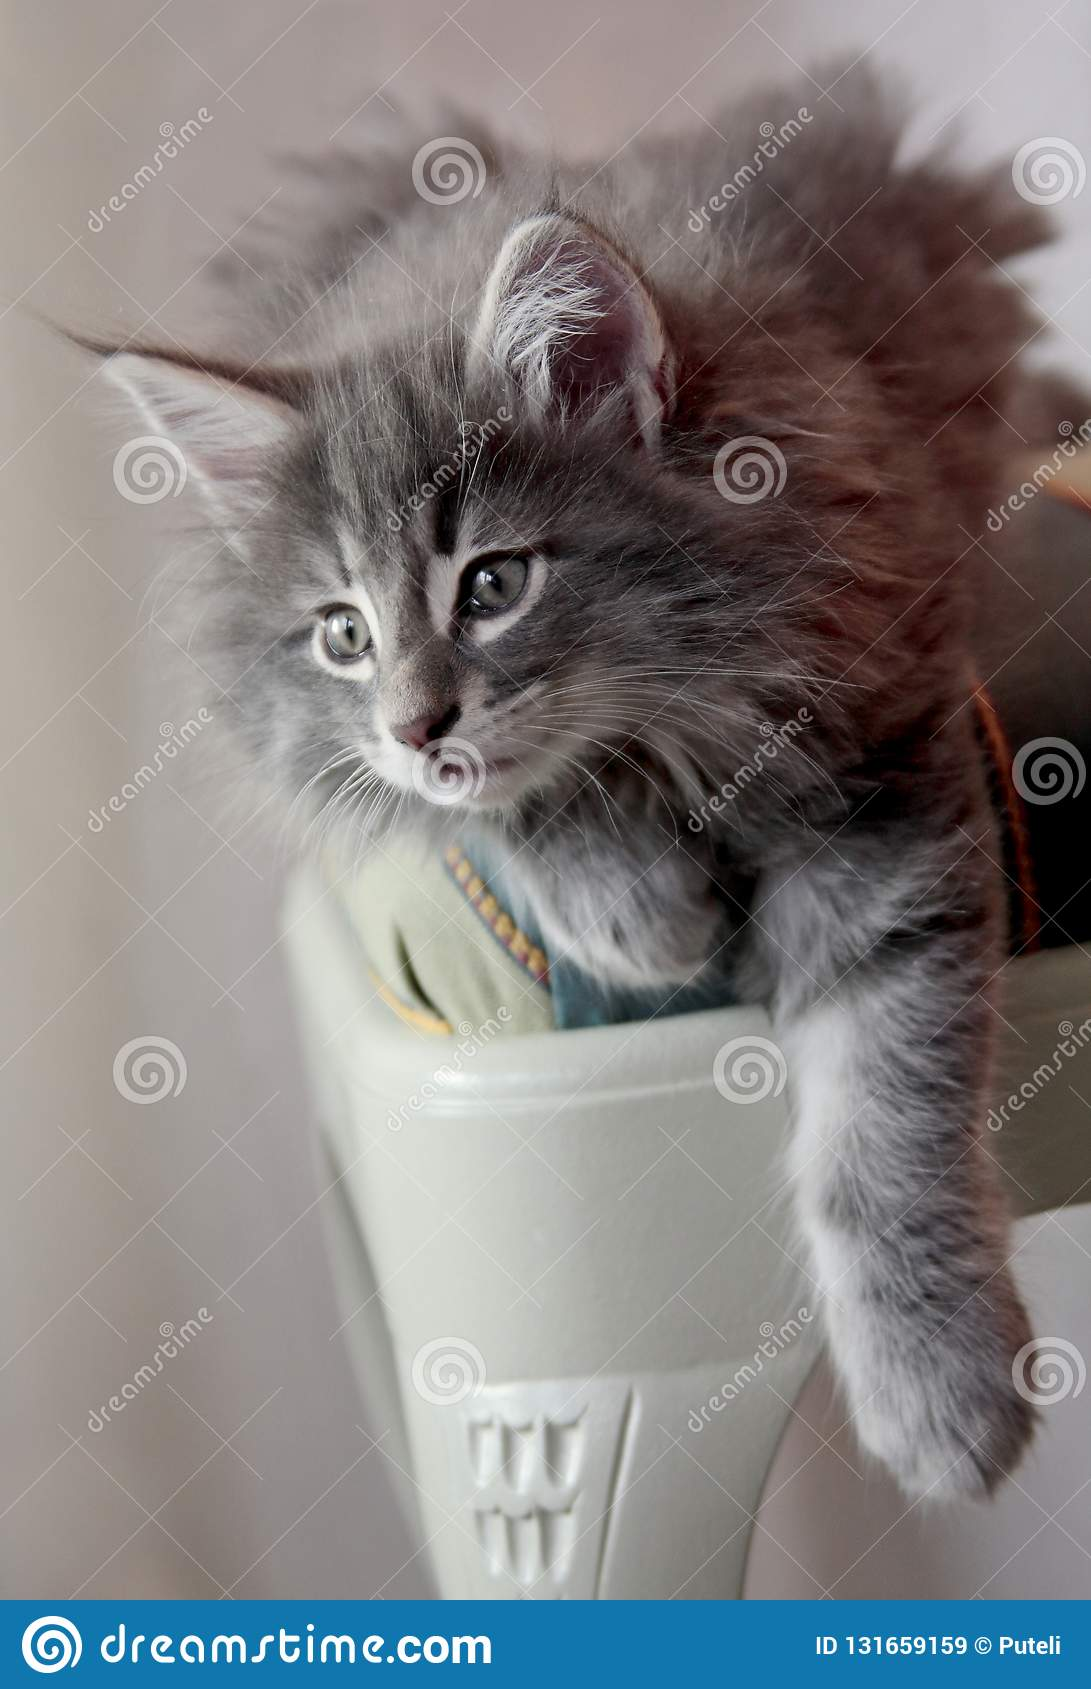 Blue Norwegian Forest Cat Kitten On A Chair Stock Image Image Of Fluffy Chair 131659159